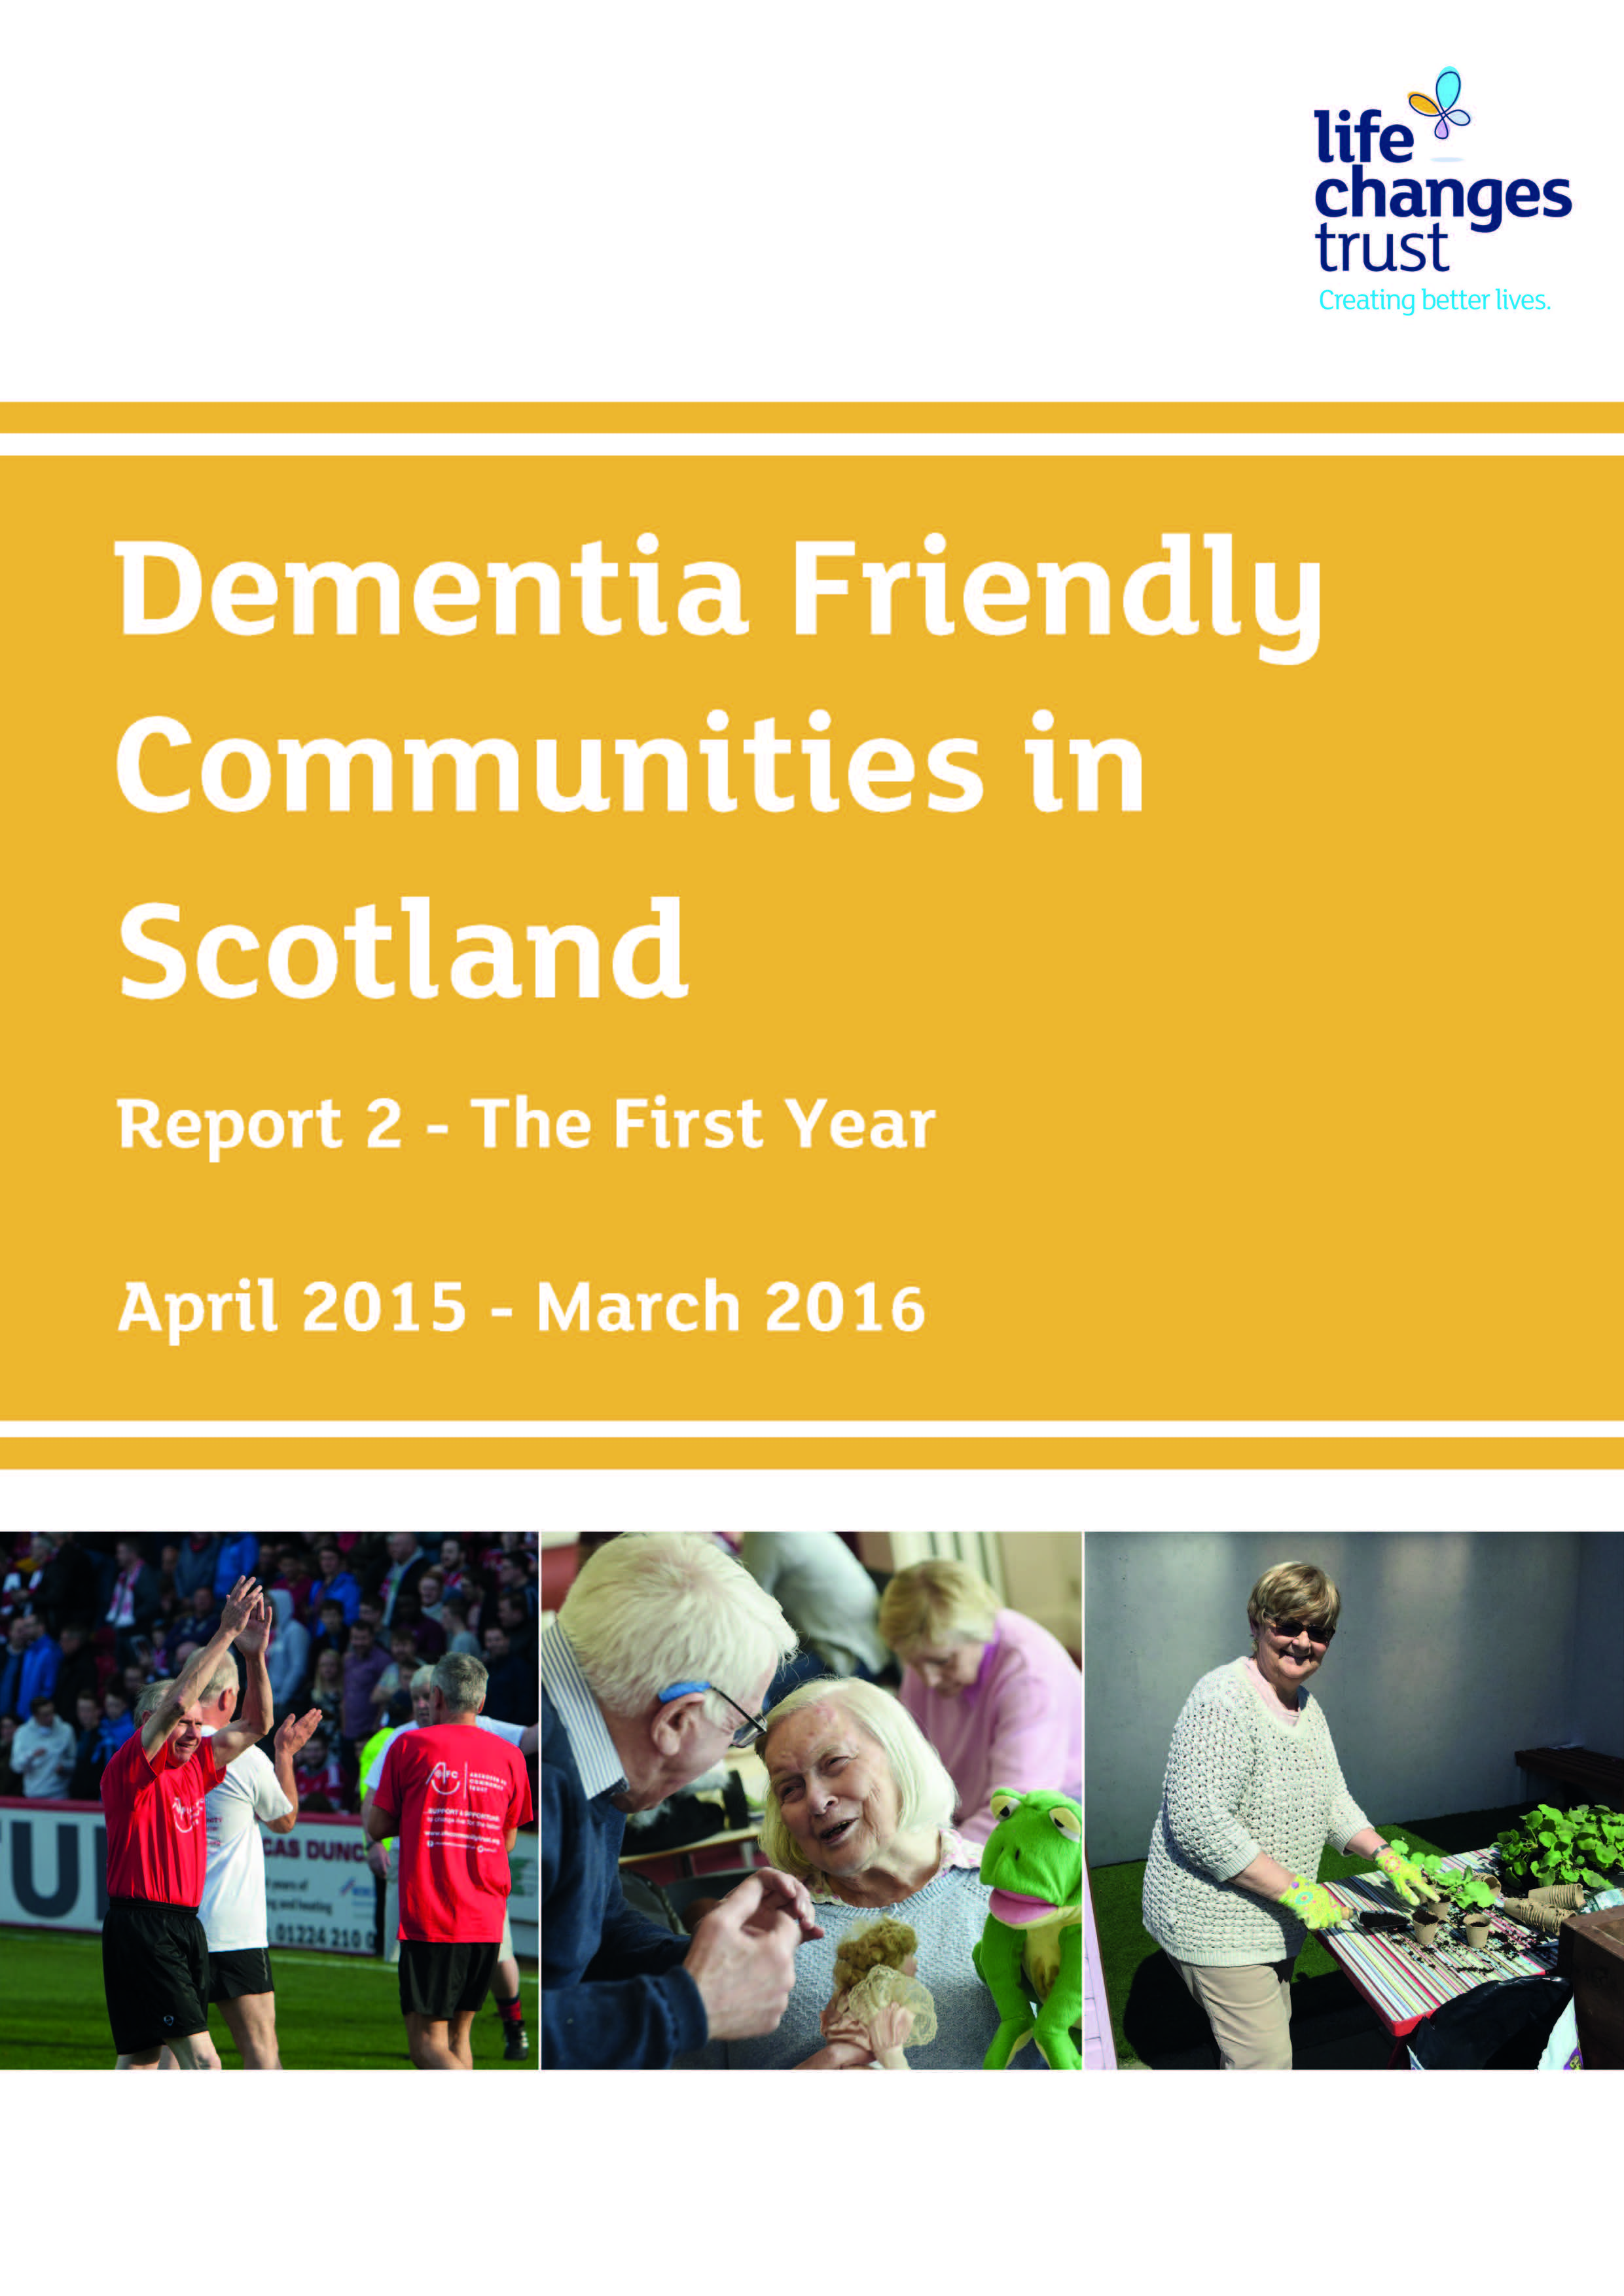 Dementia Friendly Communities in Scotland Report 2 - The First Year